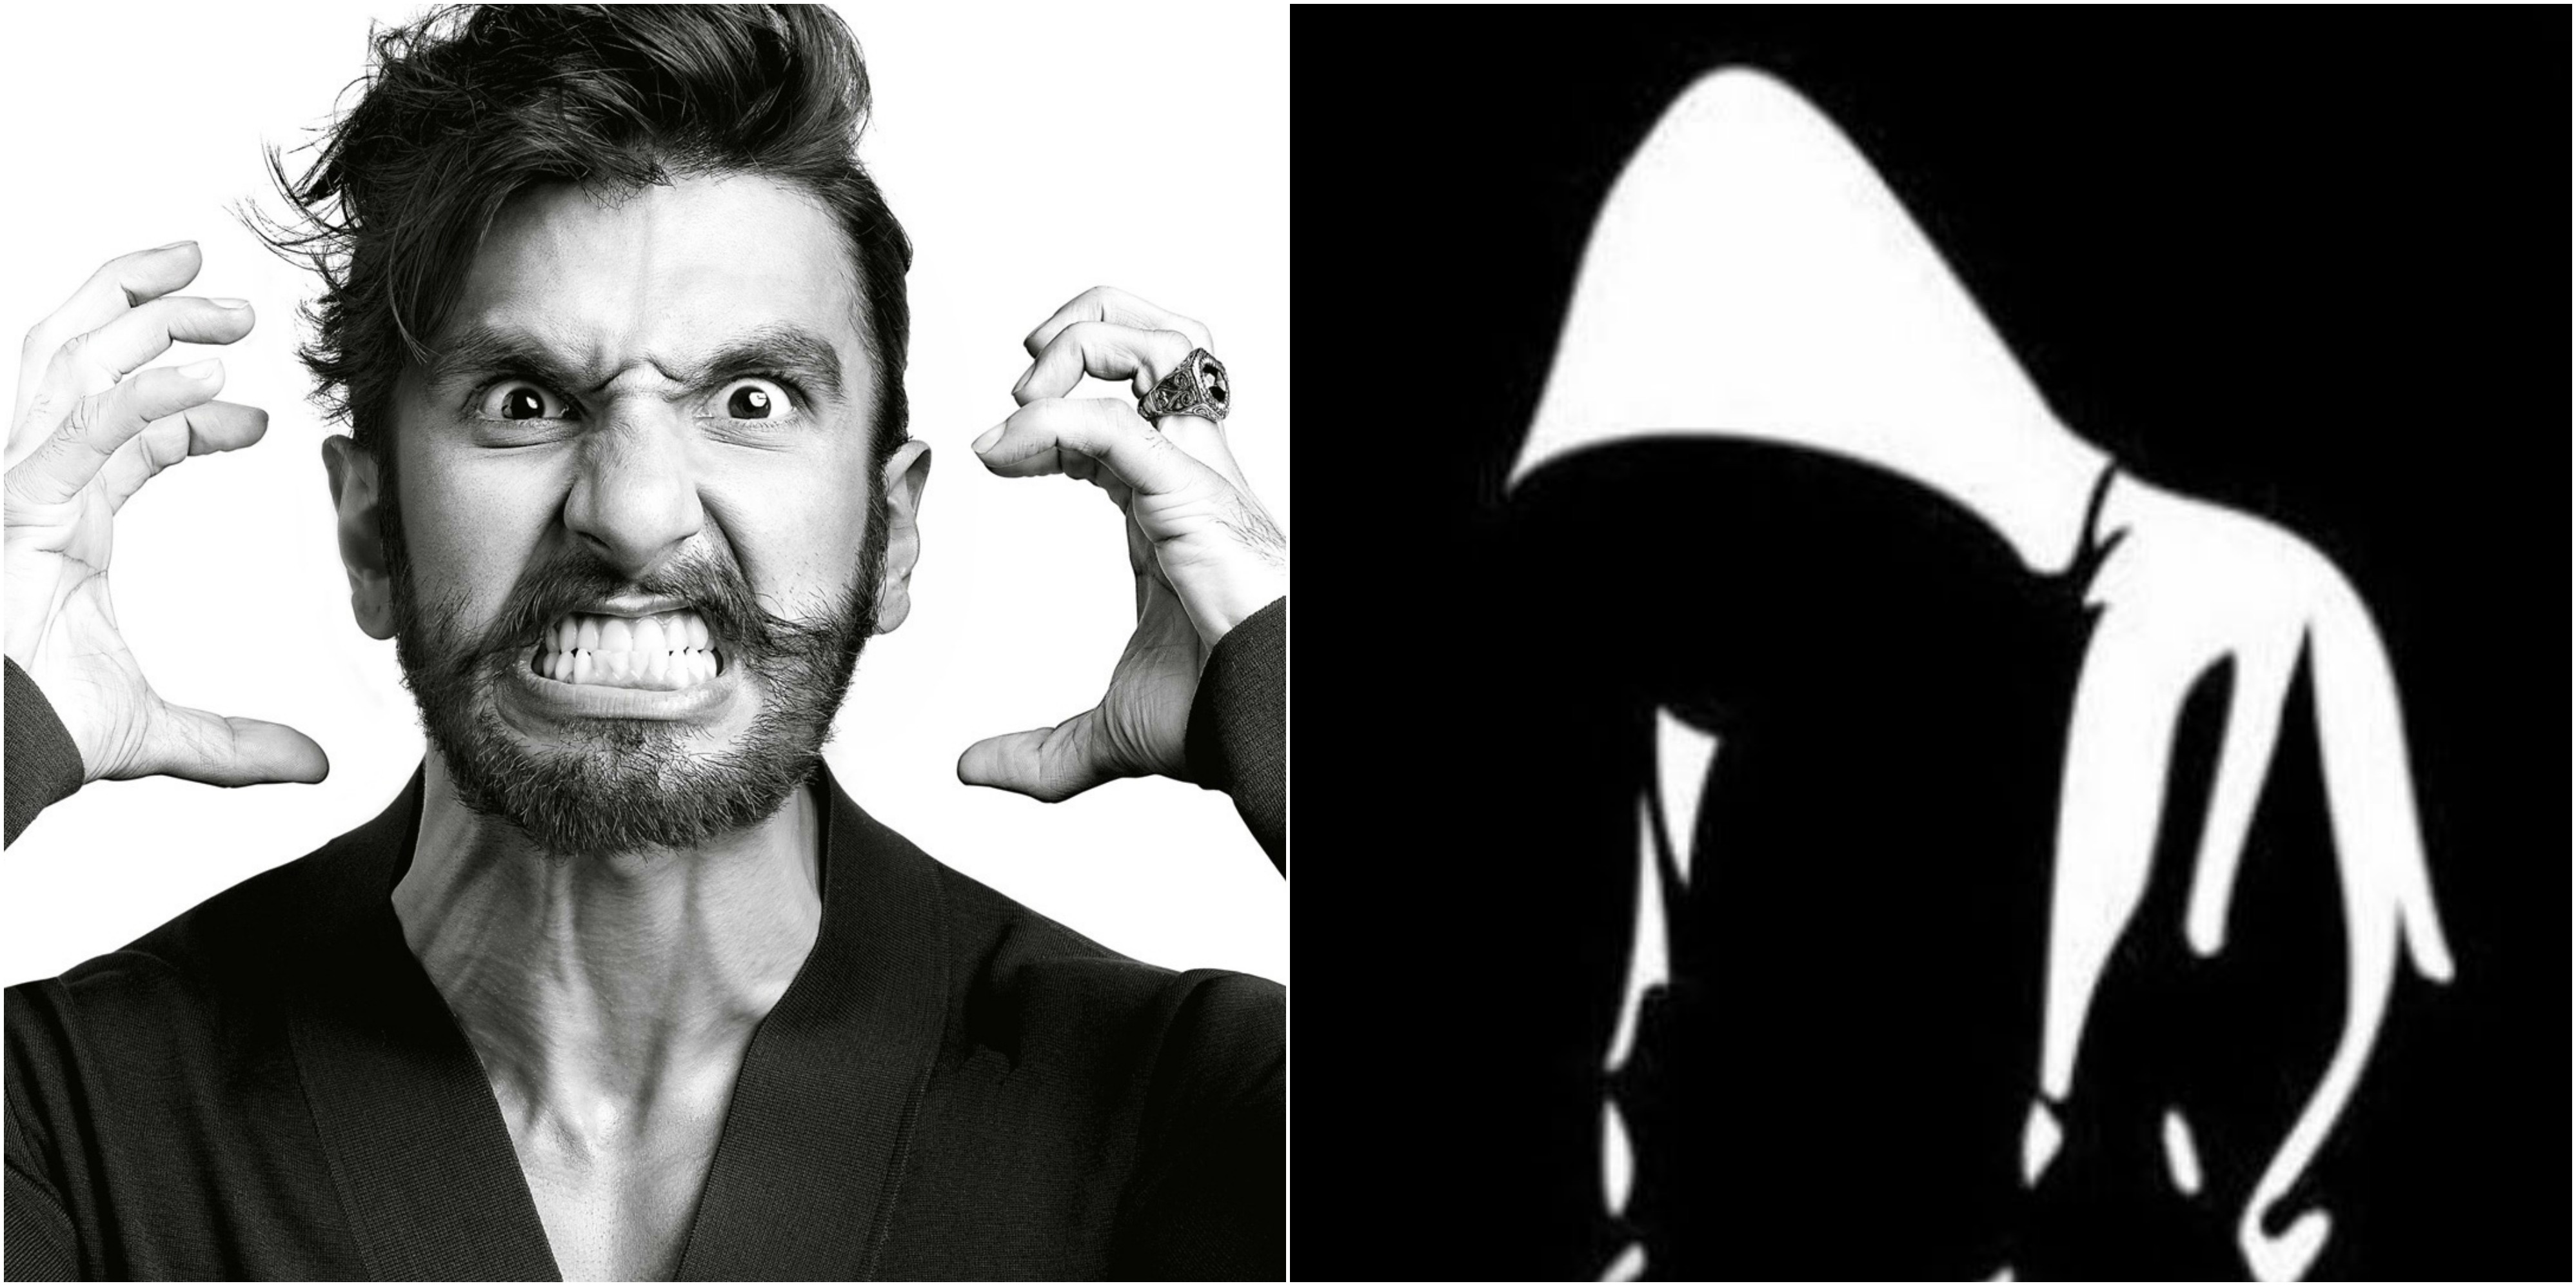 Padmavati-SLB Replaces Ranveer Singh with this Actor